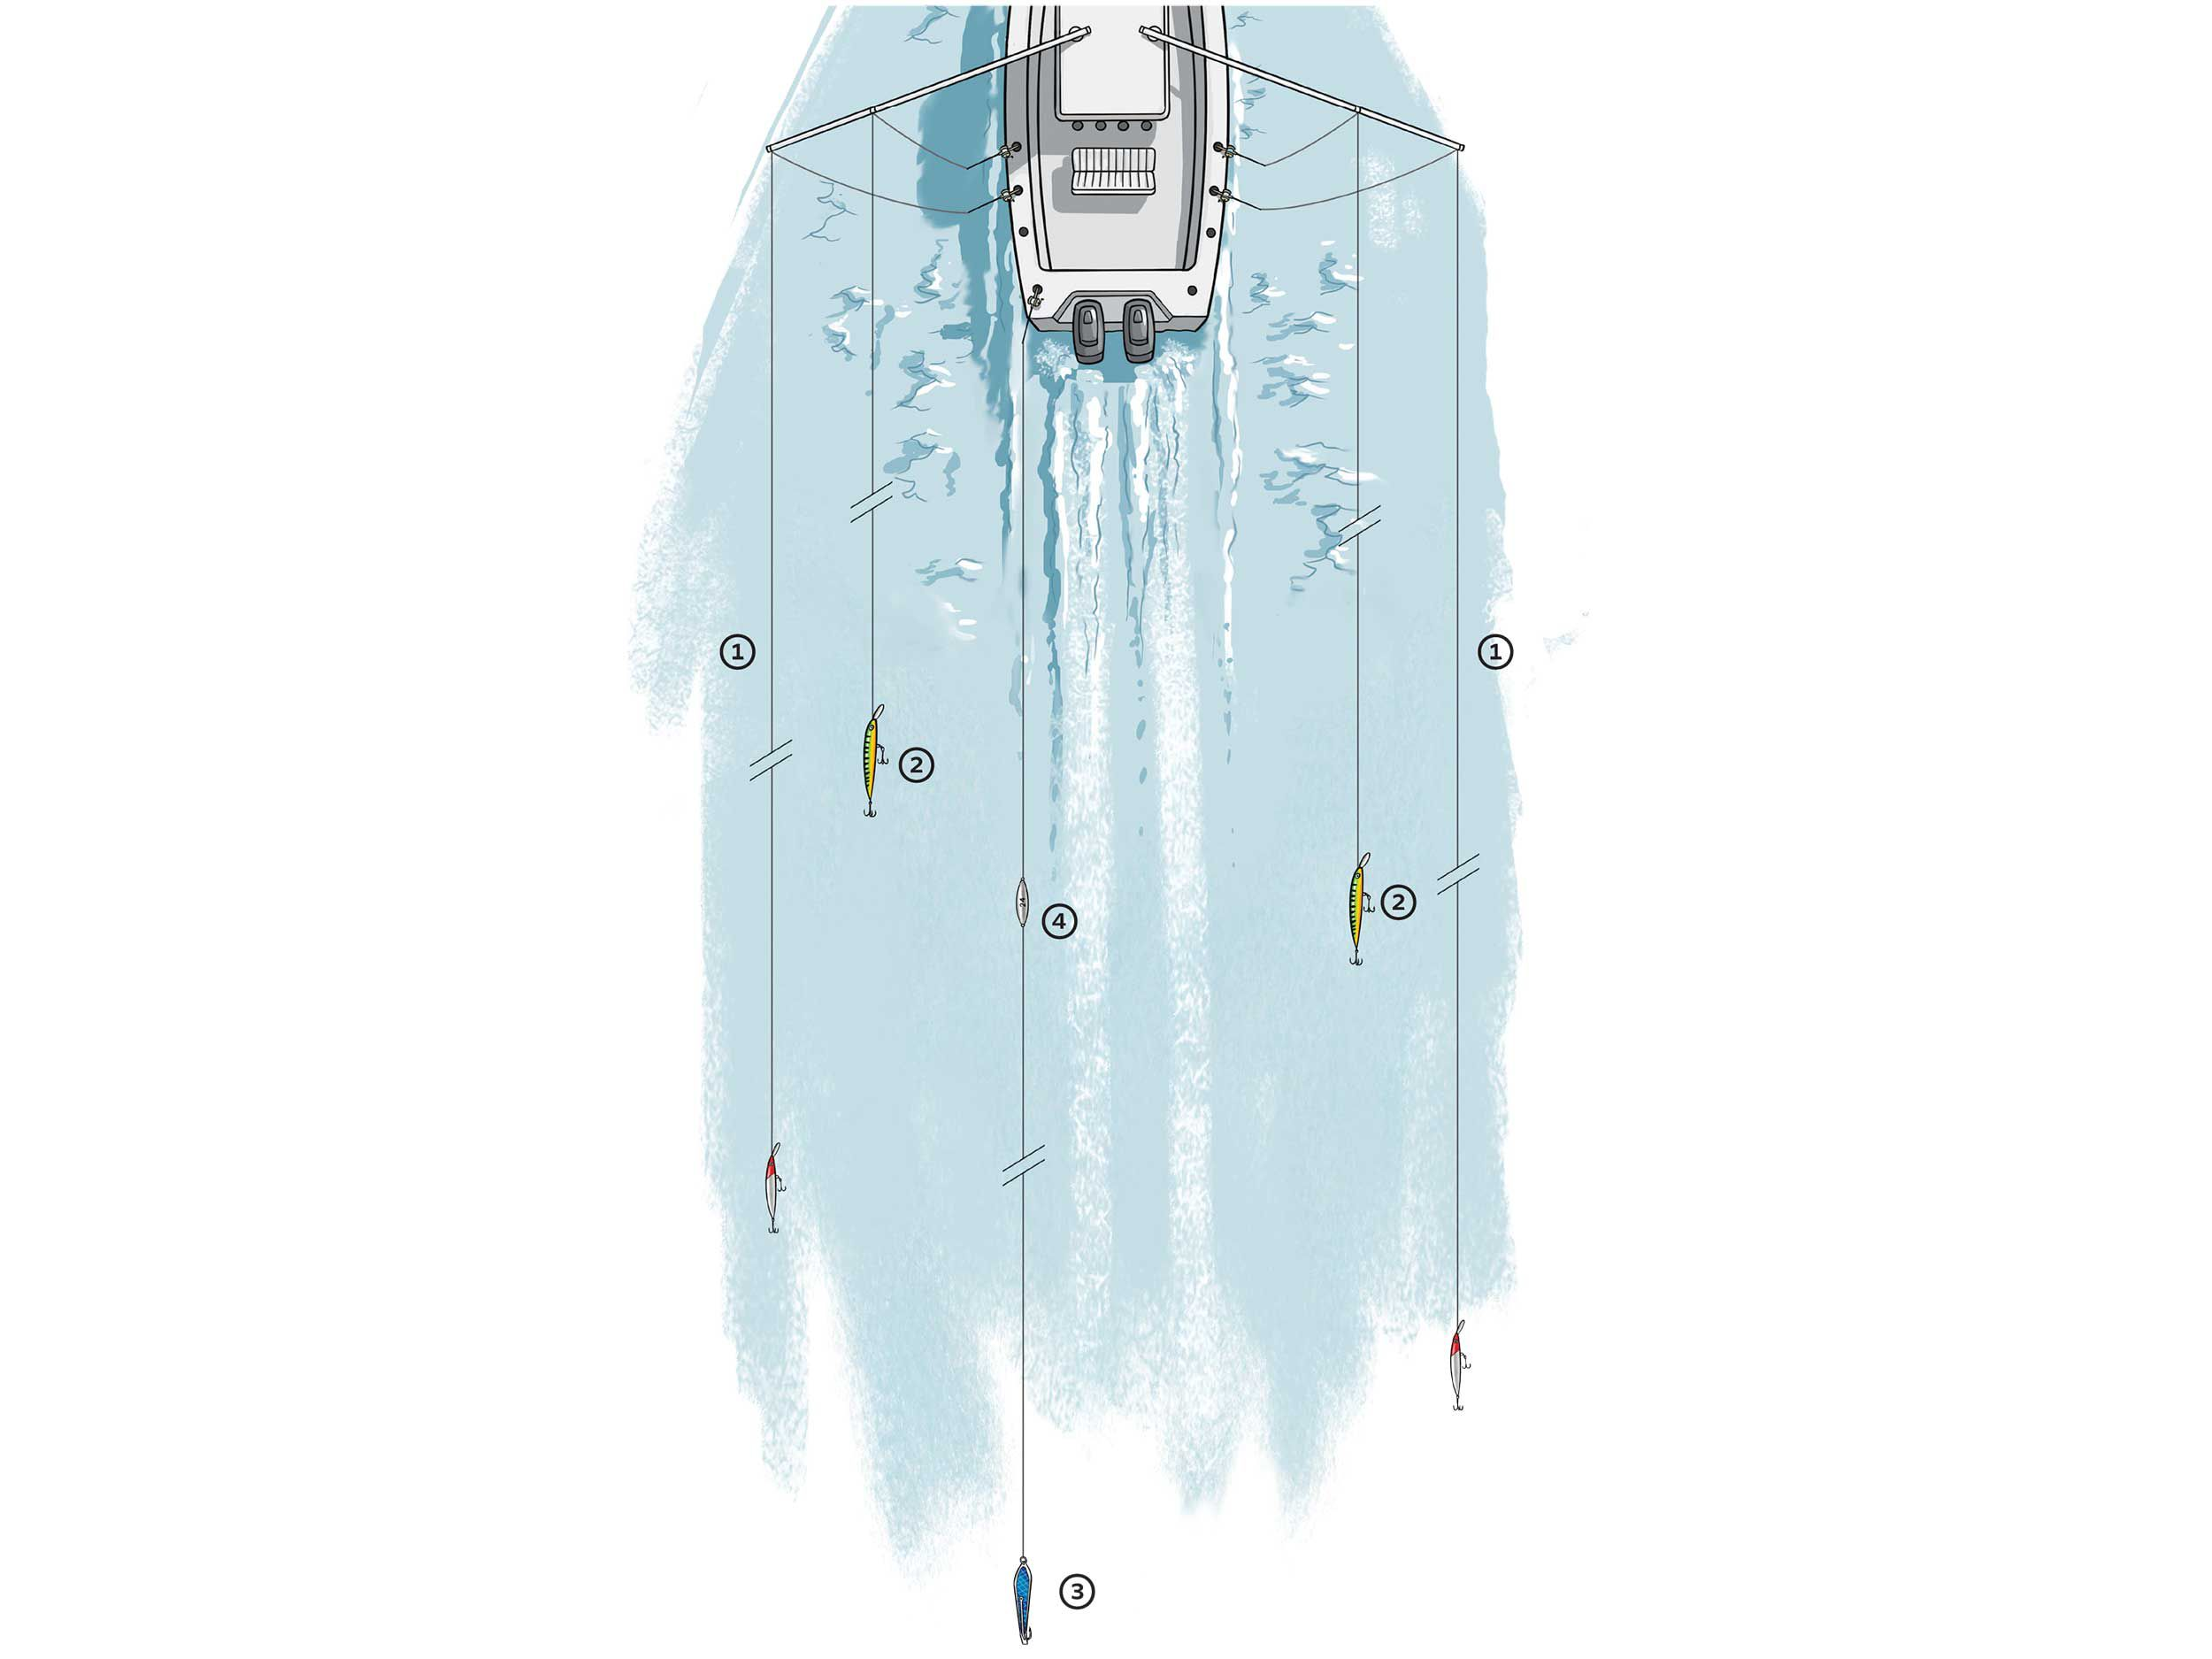 To cover scattered kings, troll high-speed plugs at 6 knots: Run a pair of Rapala CDMag 18s on the long riggers, [1]; a pair of CDMag 25s on the short riggers, [2]; and a Drone 31⁄2 spoon, [3], on the flat line, 75 feet behind a 24-ounce inline sinker, [4].